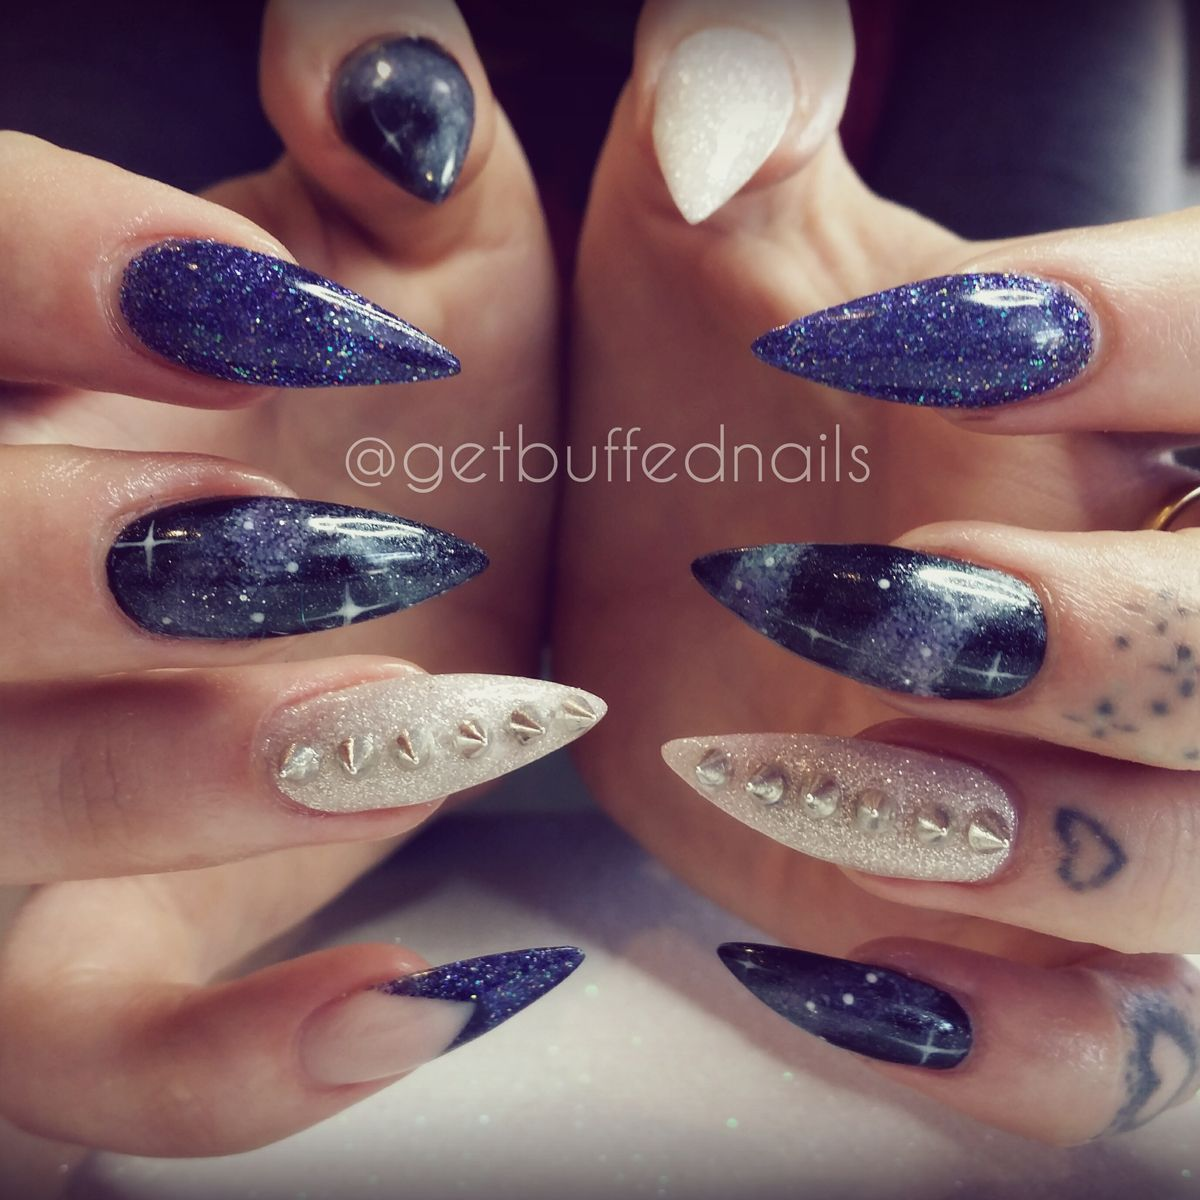 Sarah Elmaz of Get Buffed Nails has remixed the galaxy nail by pairing it  with studs - Sarah Elmaz Of Get Buffed Nails Has Remixed The Galaxy Nail By